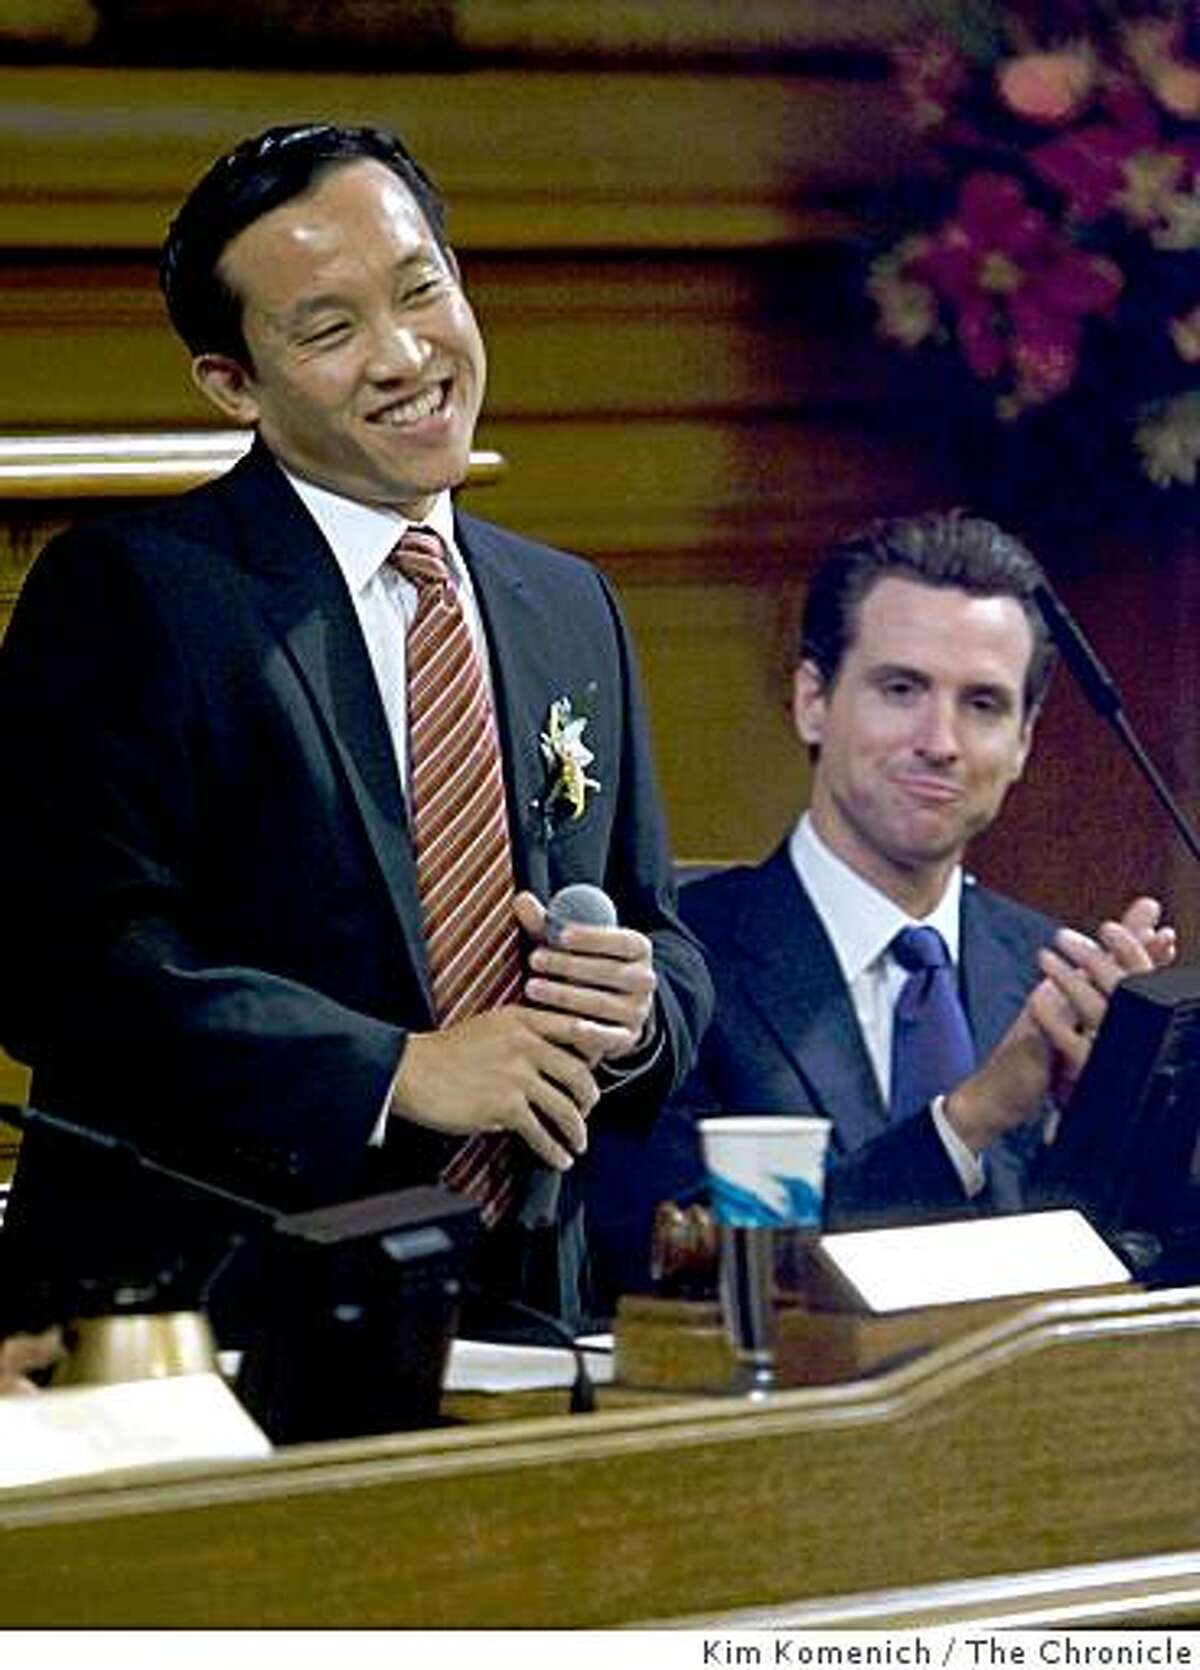 Supervisor David Chiu, left, is elected president of the San Francisco Board of Supervisors in the board's San Francisco, Calif., chambers on Thursday Jan. 8, 2009. San Francisco Mayor Gavin Newsom is at right.